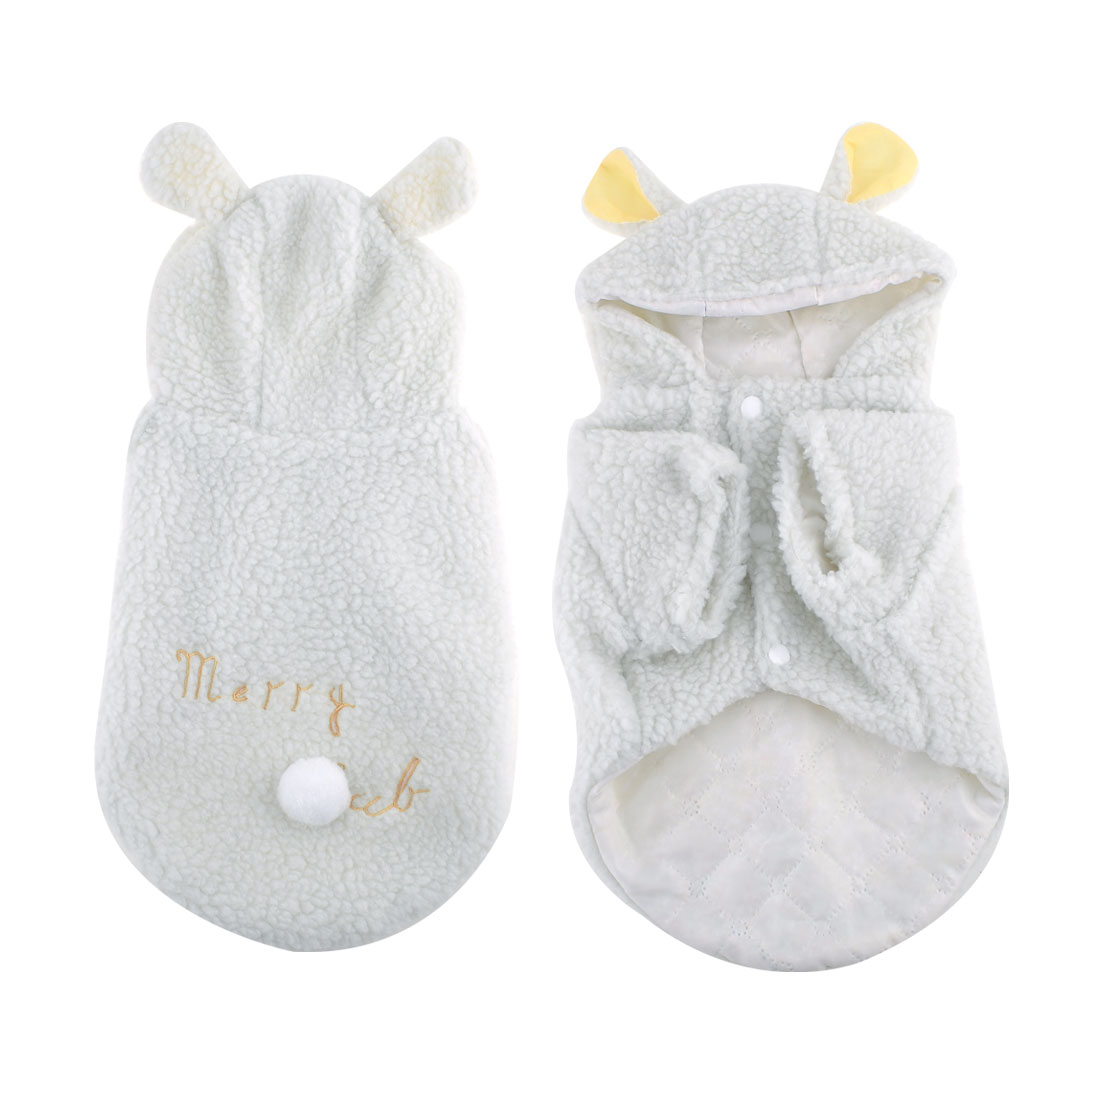 Pet Dog Puppy White Hooded Letter Print Press Stud Button Coat Apparel L